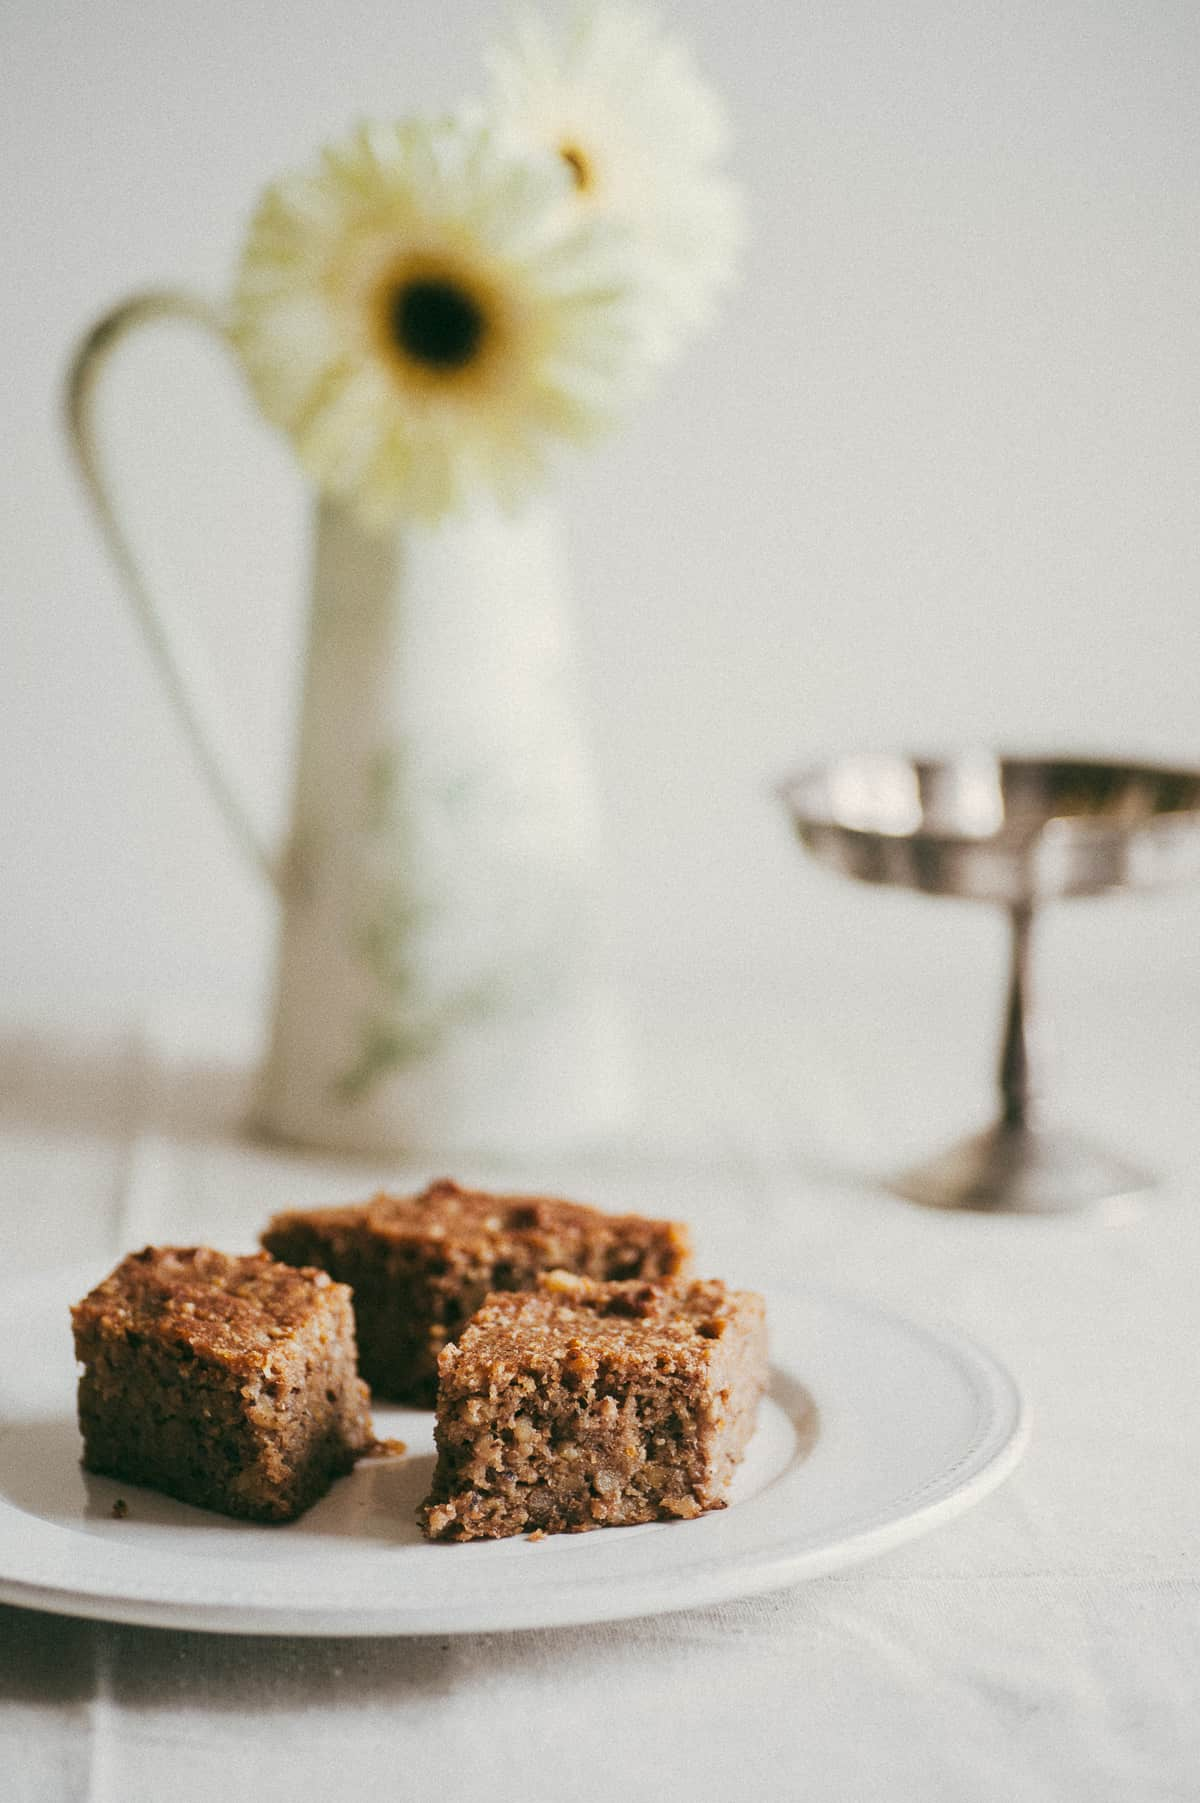 three pieces of Greek walnut cake served on white plate